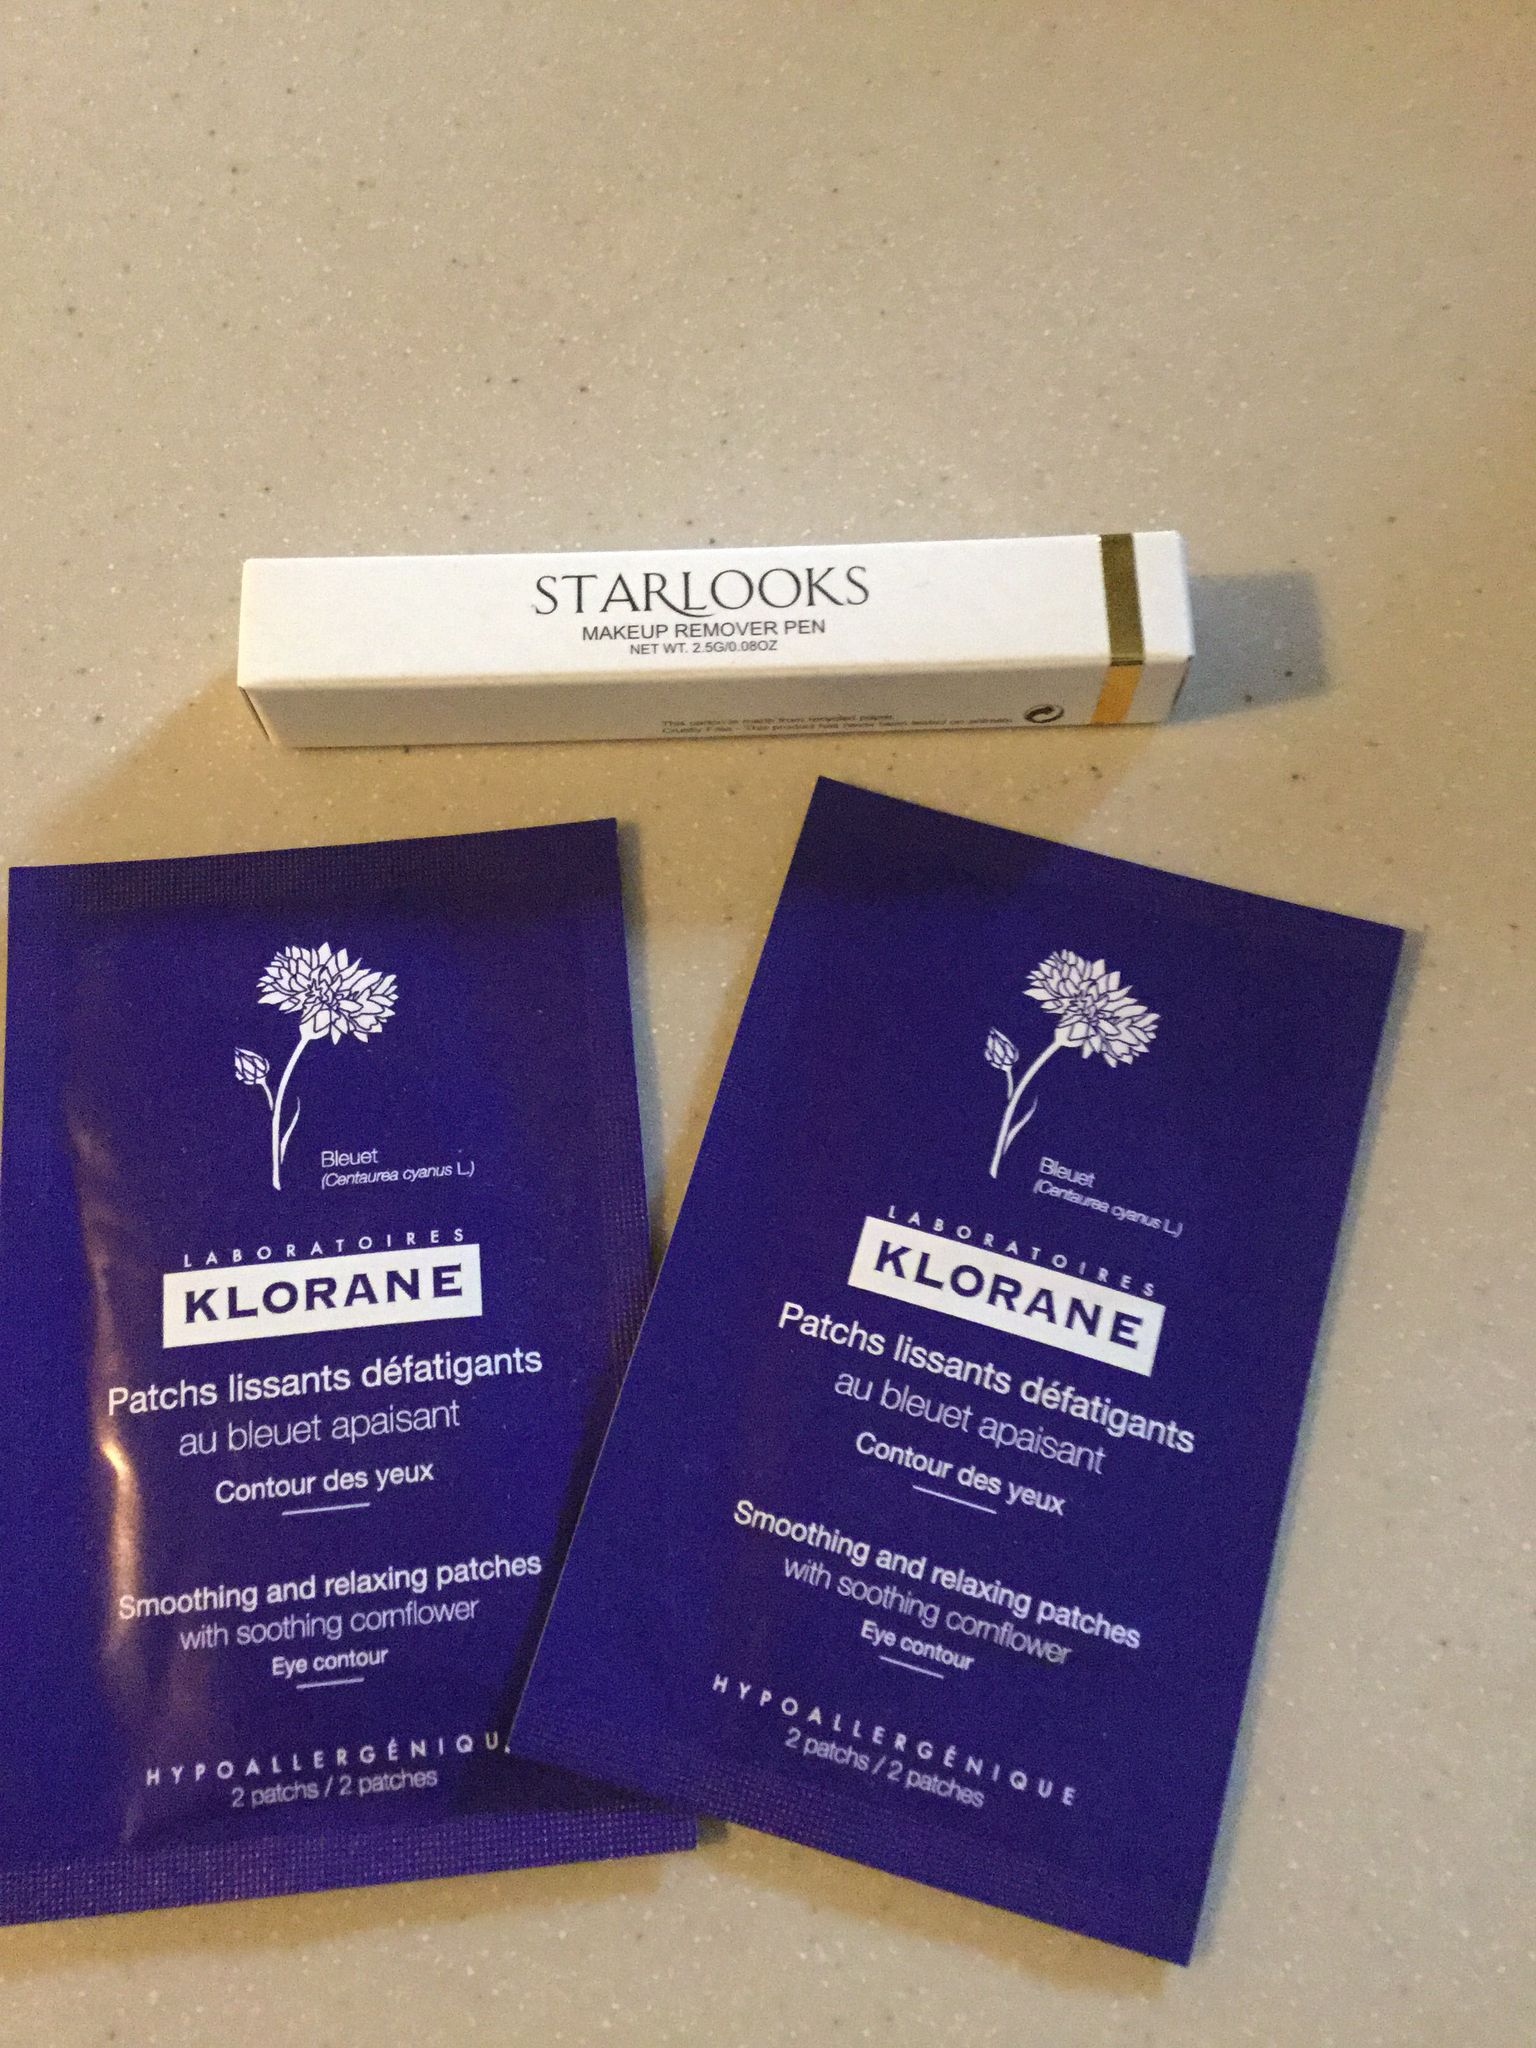 Klorane Patches and Starlooks Makeup remover pen Makeup